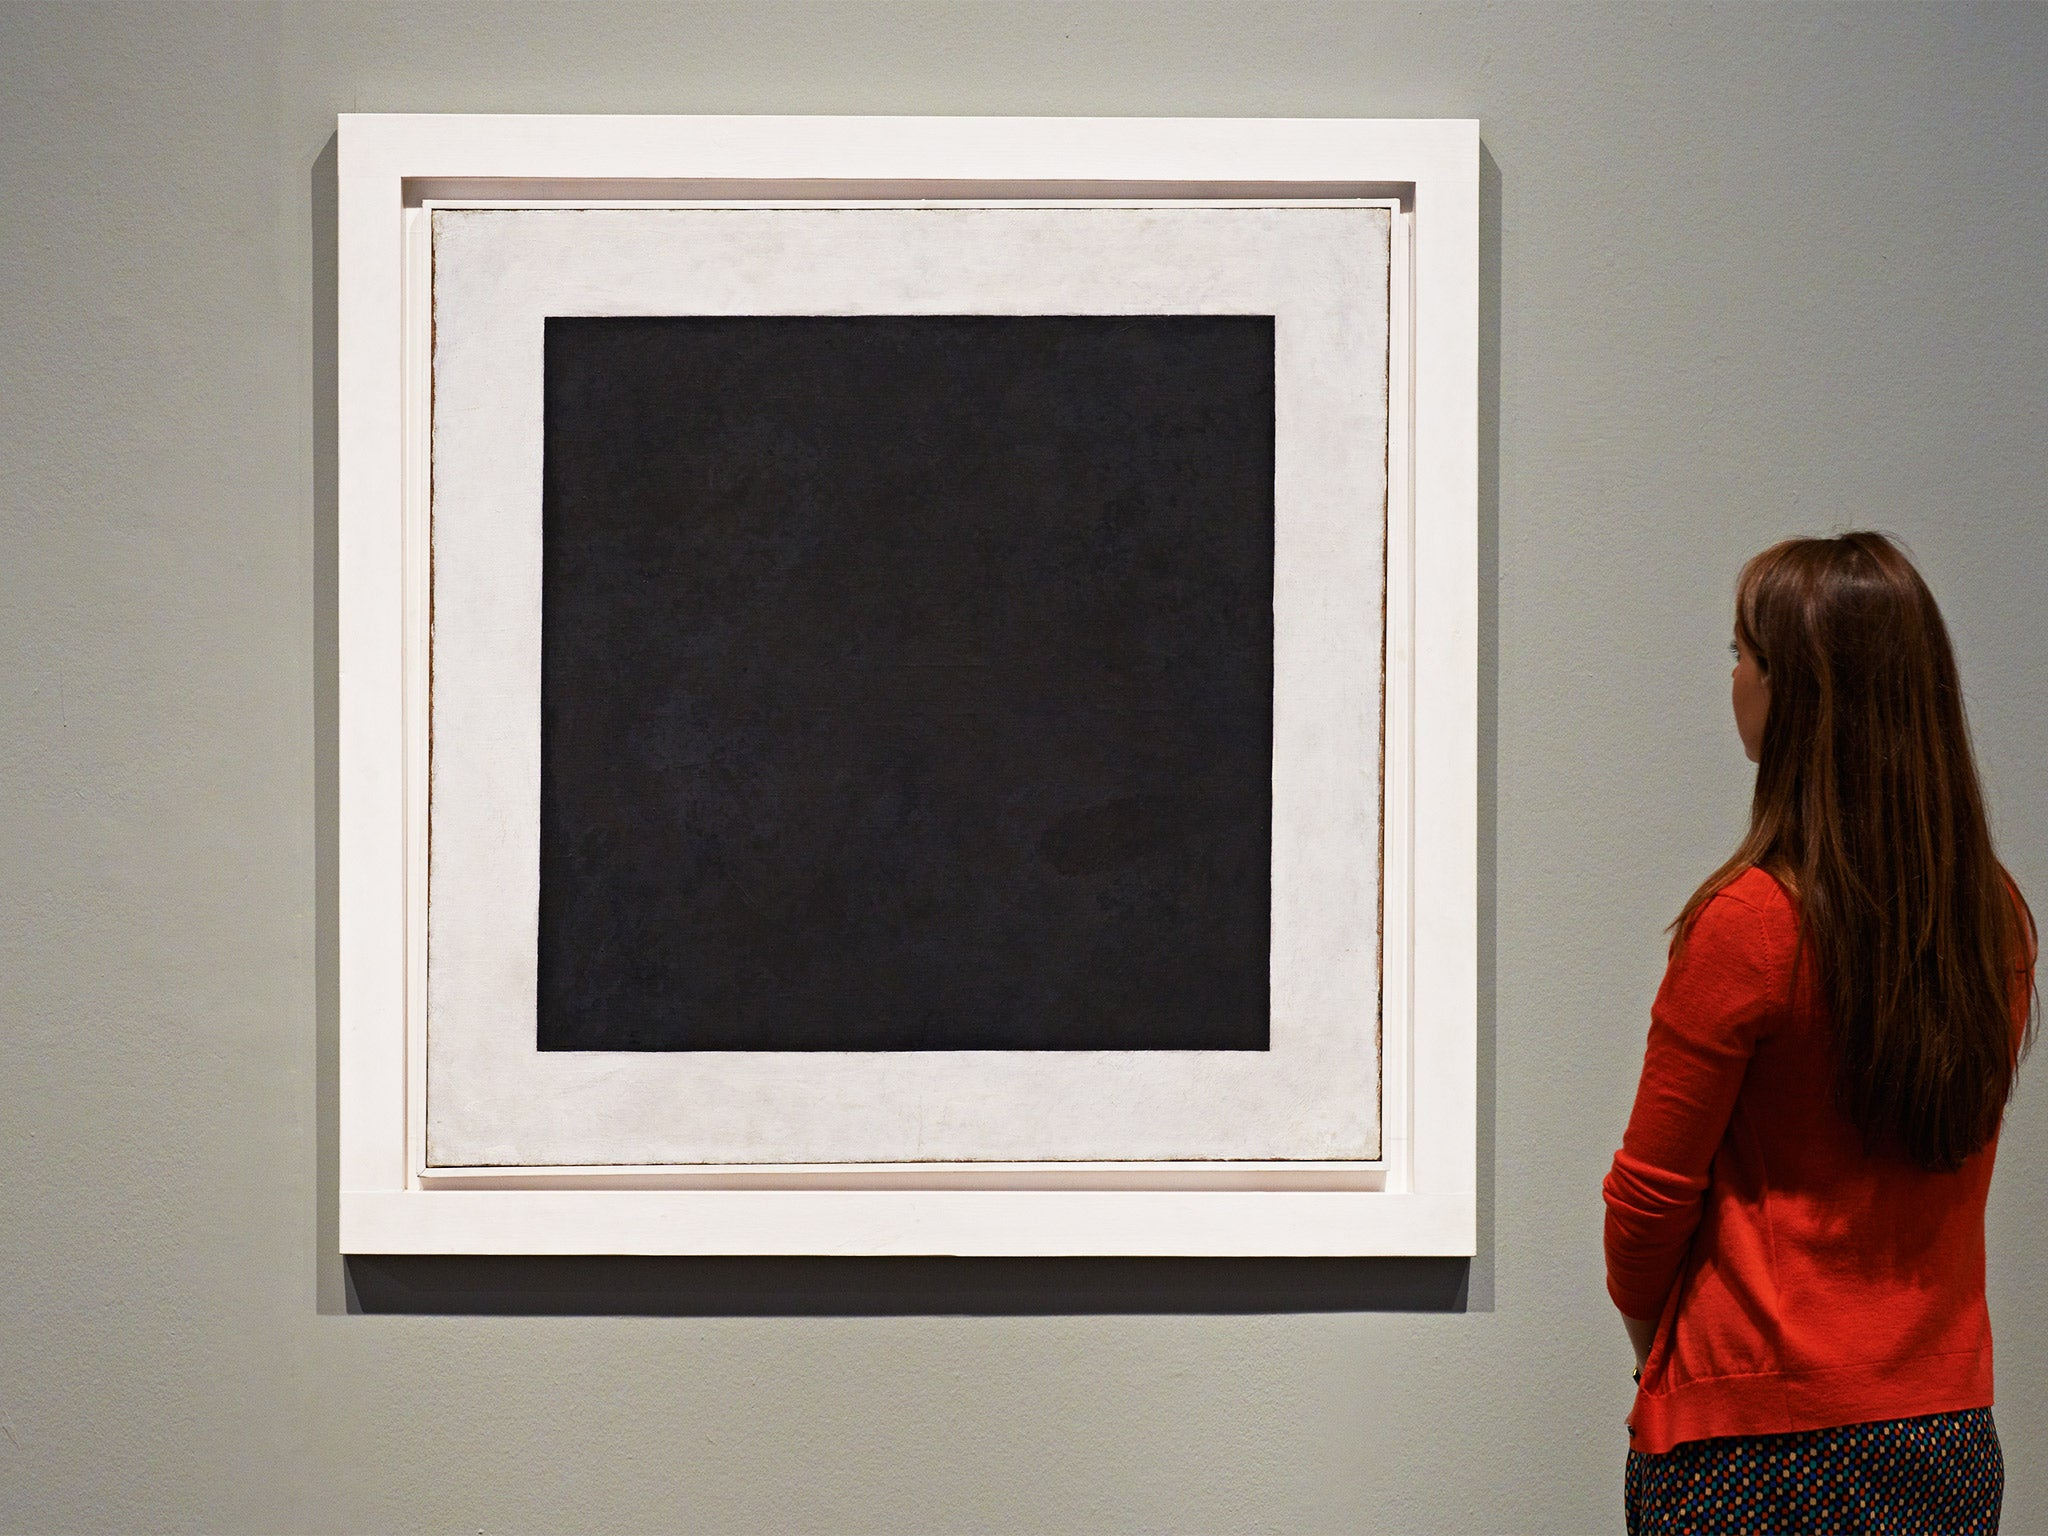 Kasimir Malevich's 'Black Square': What does it say to you?